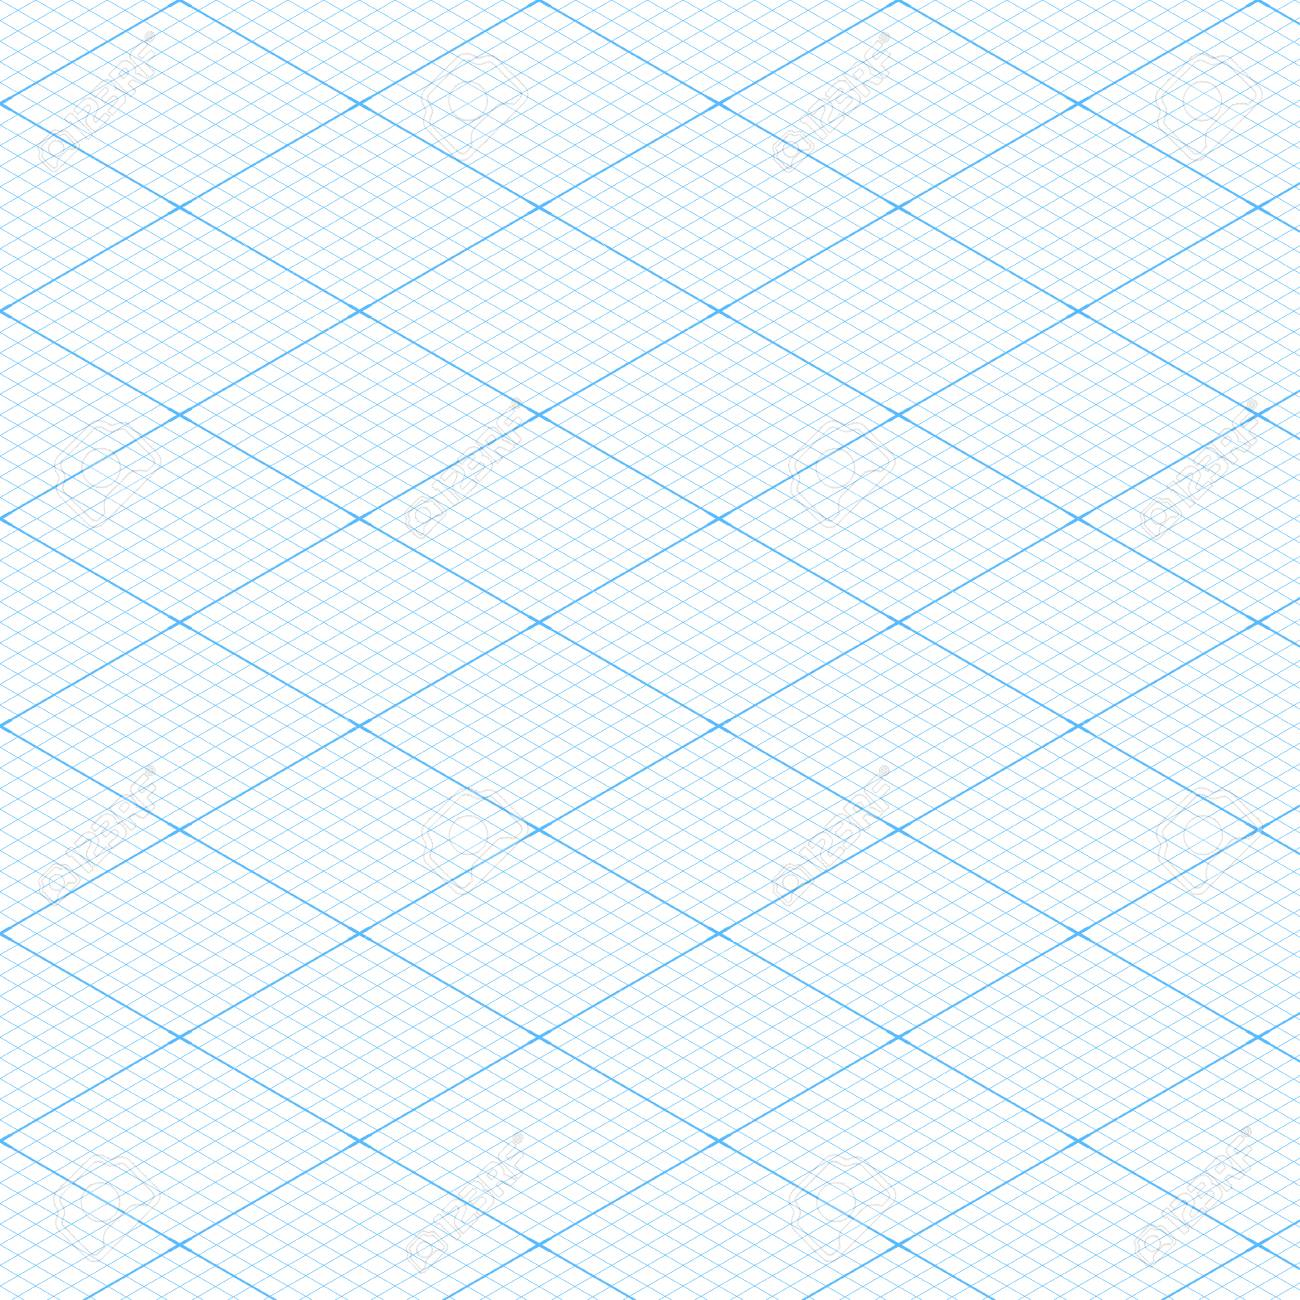 Vector   White Isometric Blueprint Grid Seamless Pattern Background  Texture. Vector Illustration